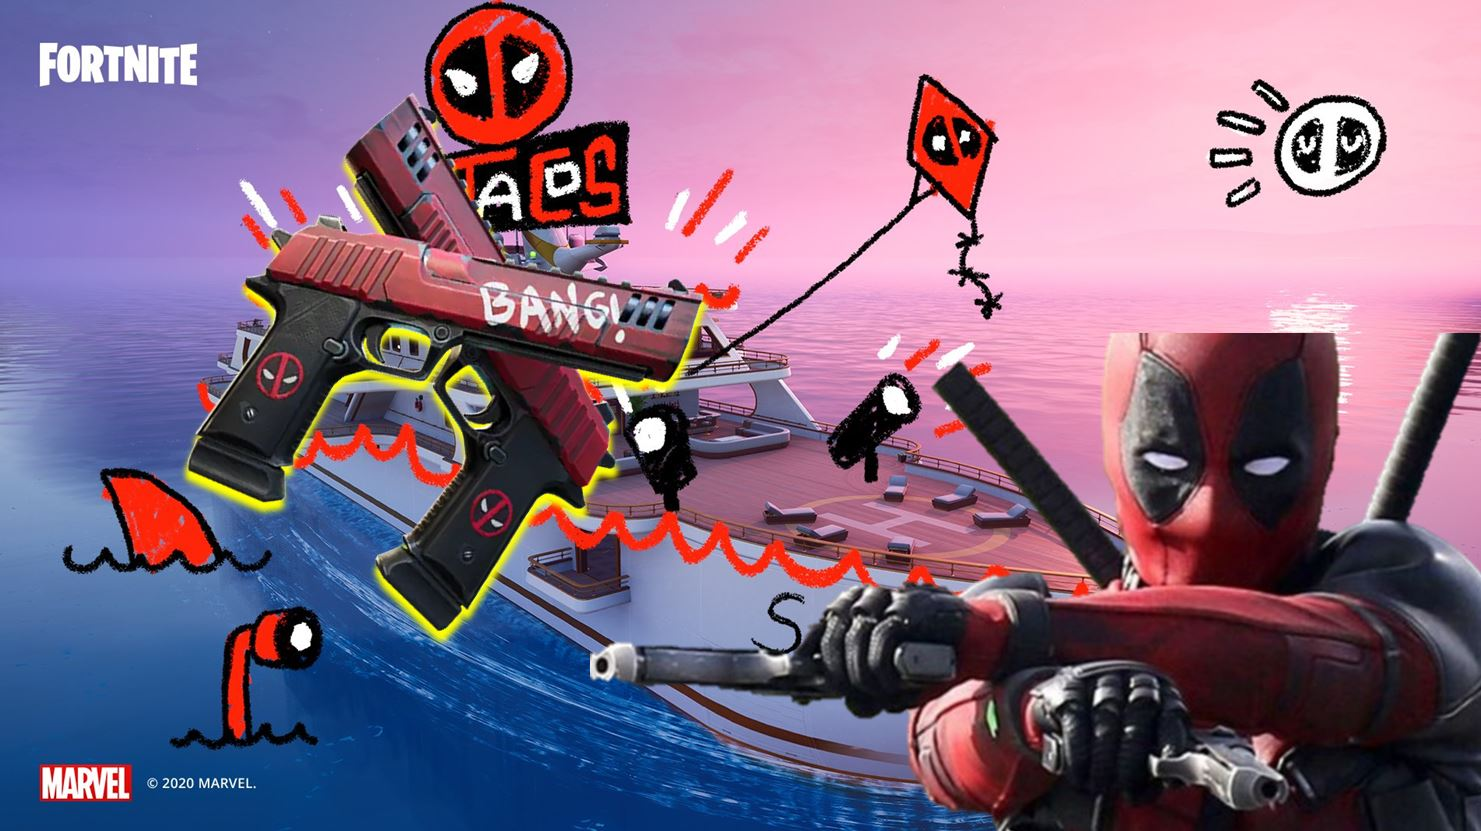 How to unlock the long-awaited Deadpool Fortnite skin